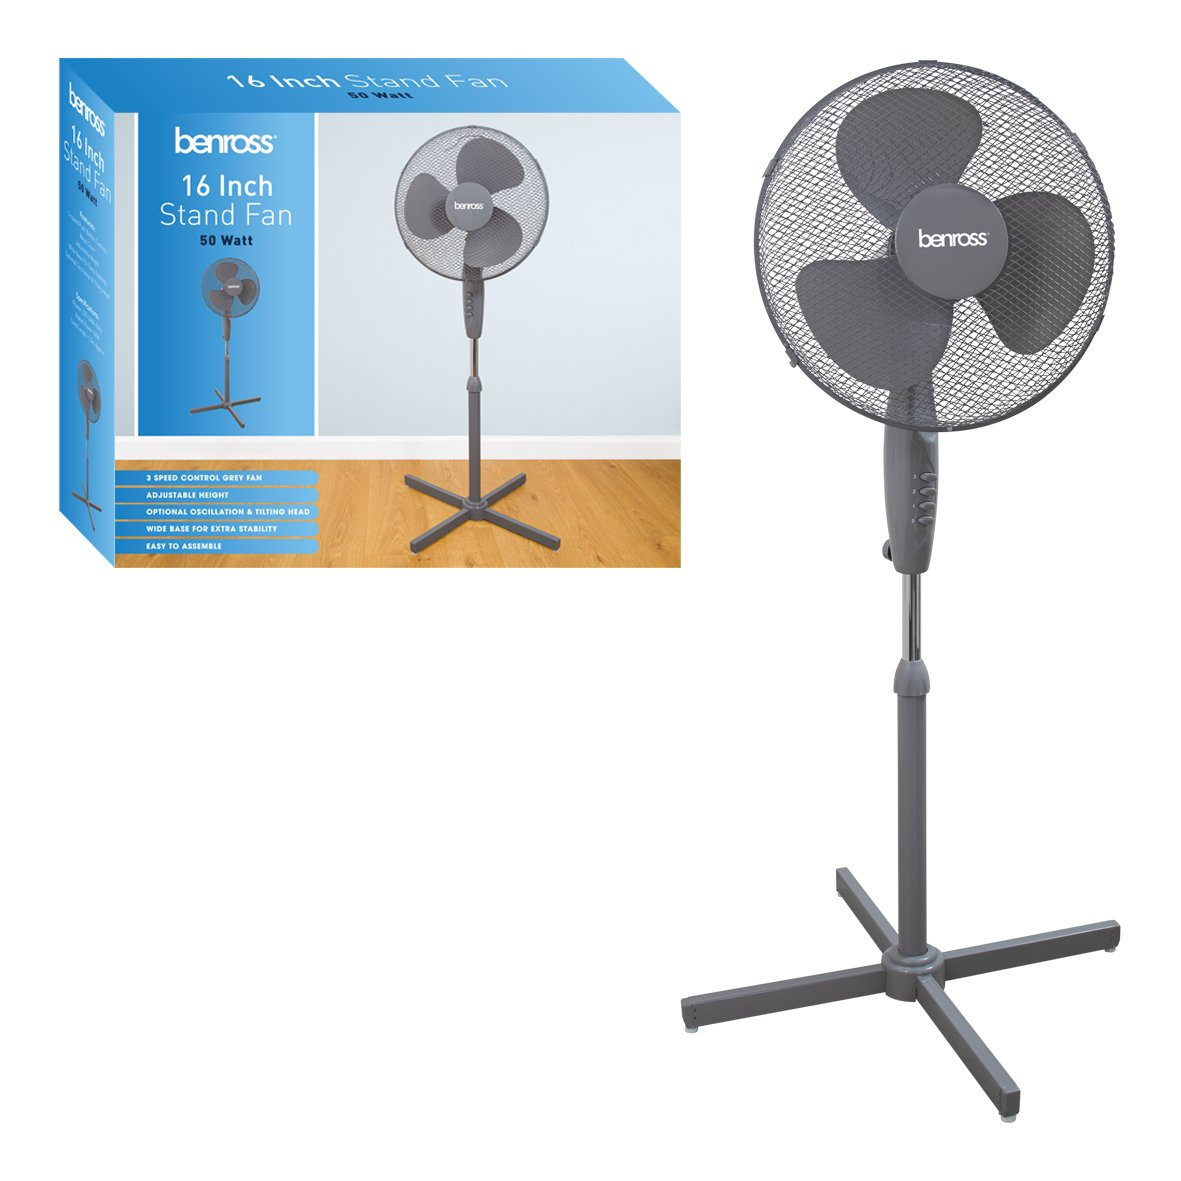 Benross 16 inch 3-Speed Stand Fan Oscillating and Tilting Head, 50W